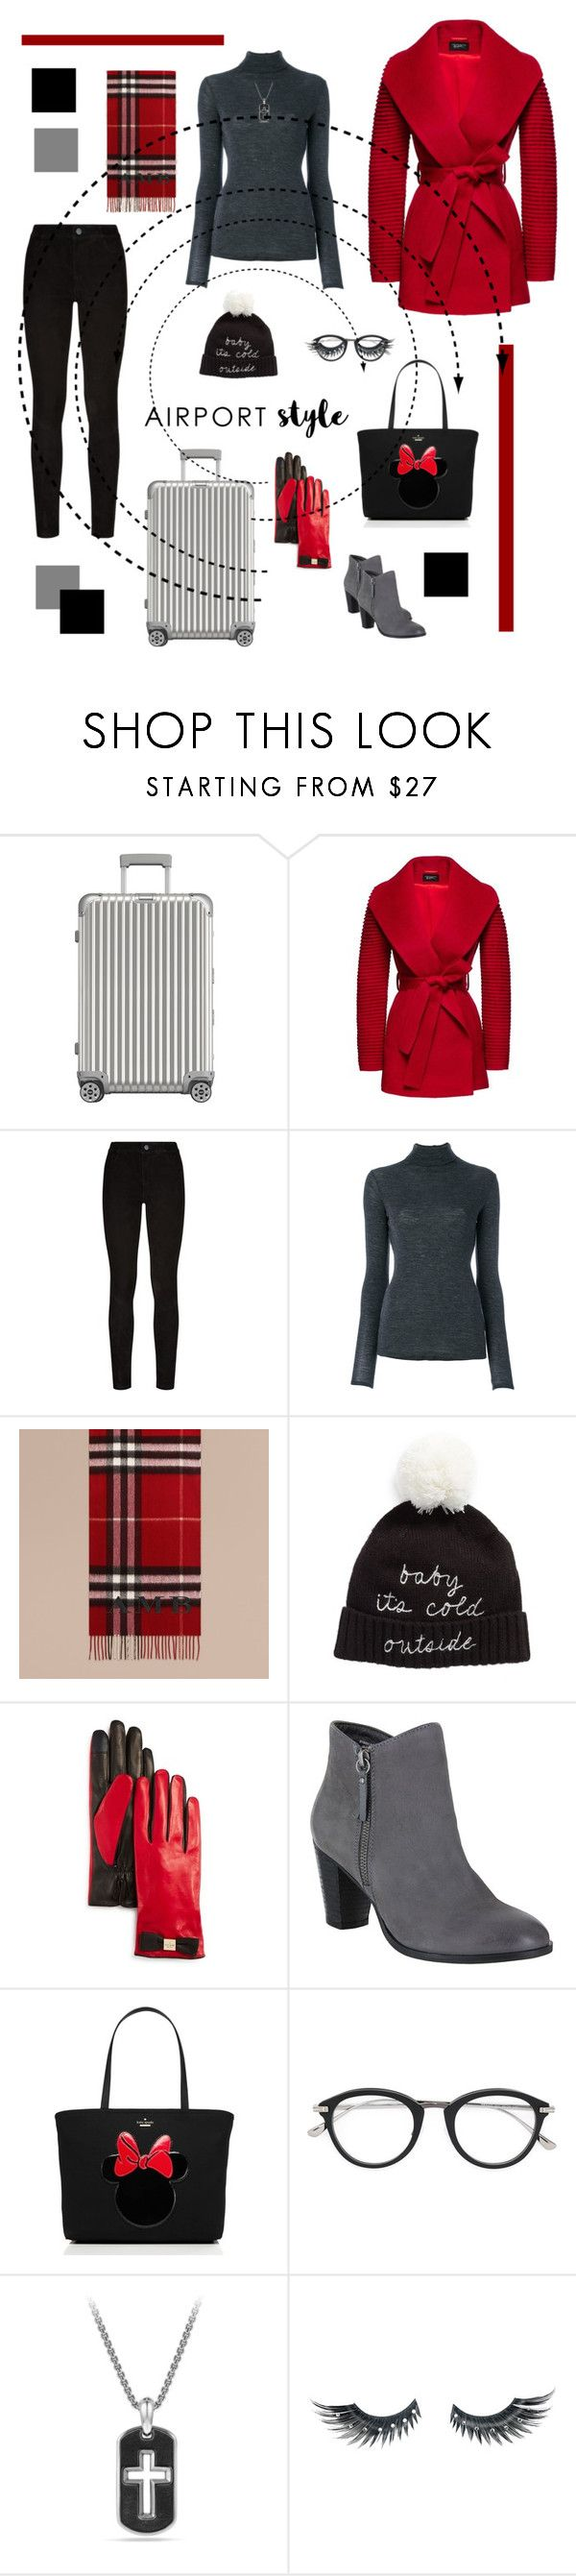 """Untitled #2820"" by tarakaypoly ❤ liked on Polyvore featuring Rimowa, Sentaler, Paige Denim, Vince, Burberry, Kate Spade, MIA, Tom Ford, David Yurman and Napoleon Perdis"